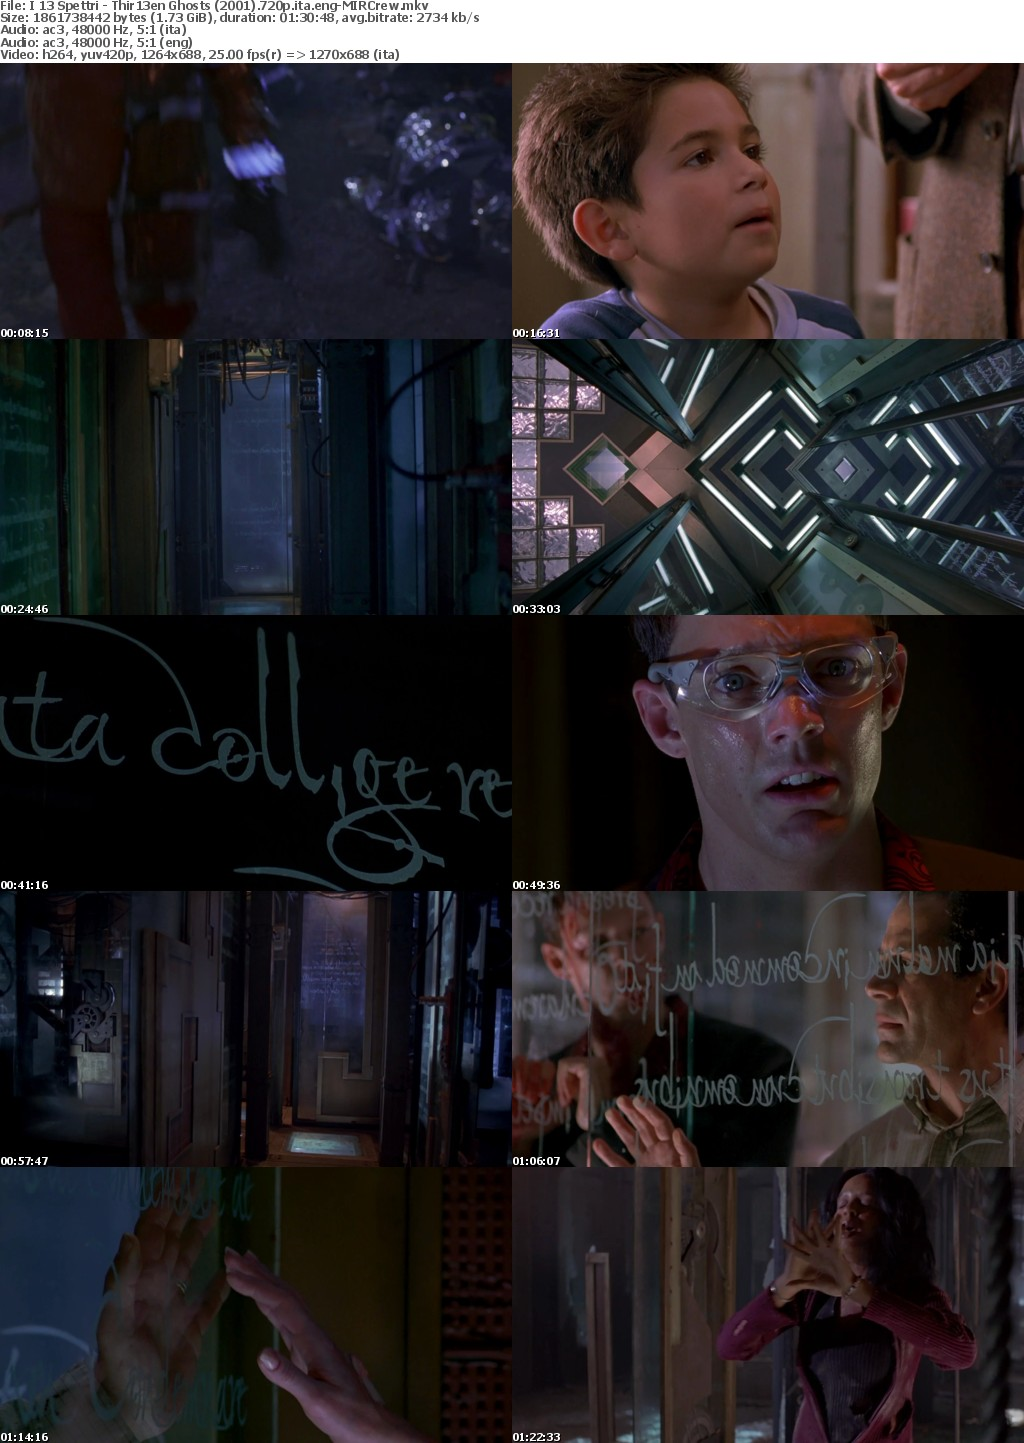 Thir13en Ghosts - I 13 Spettri (2001) 720p H264 italian english Ac3-5 1 MIRCrew